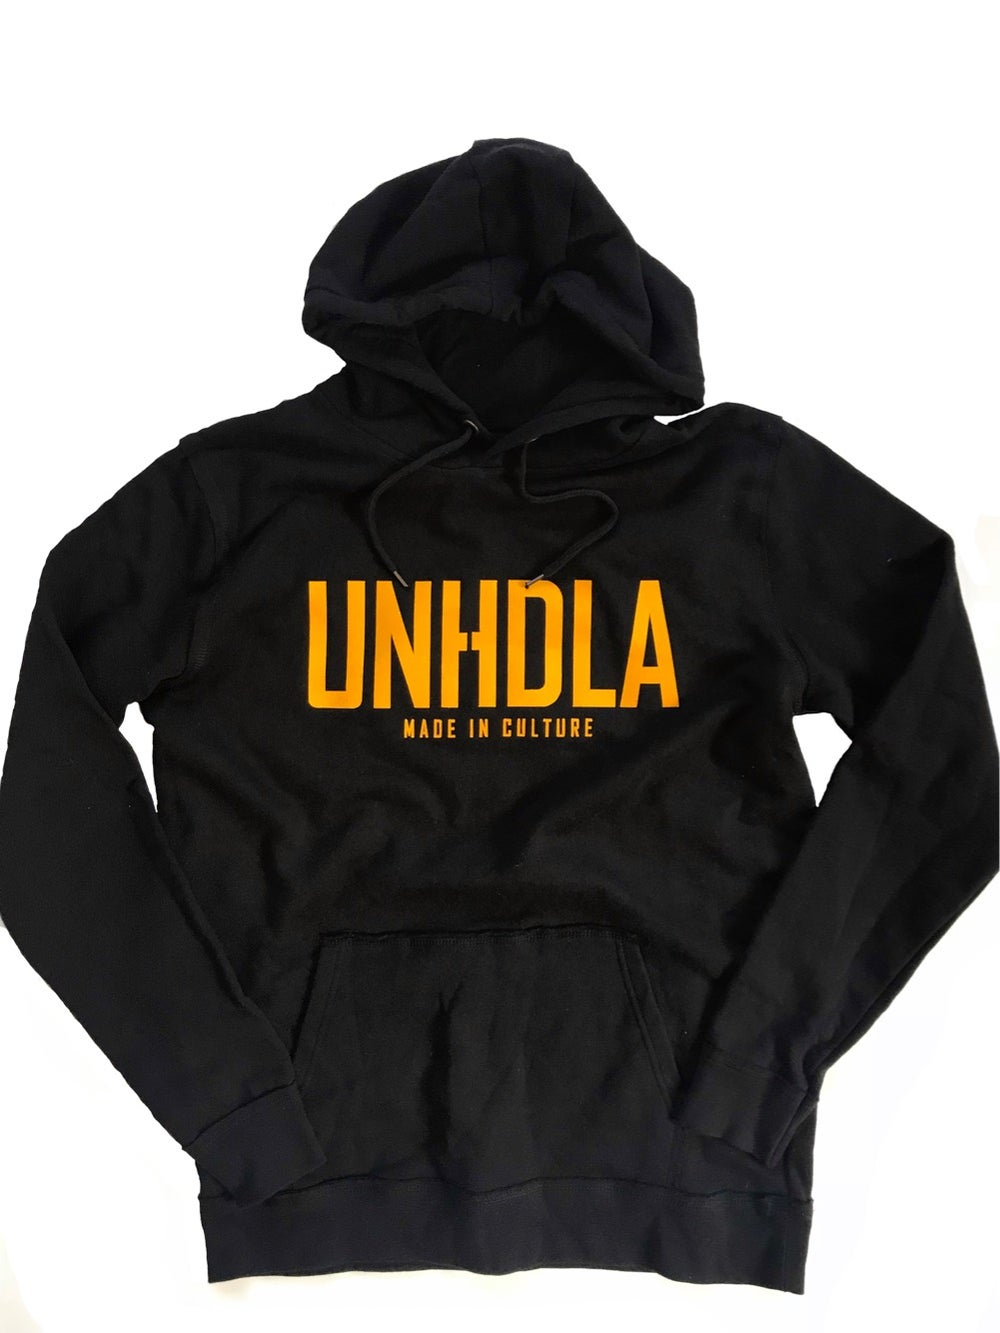 Image of UNHDLA hoodie blk/gold